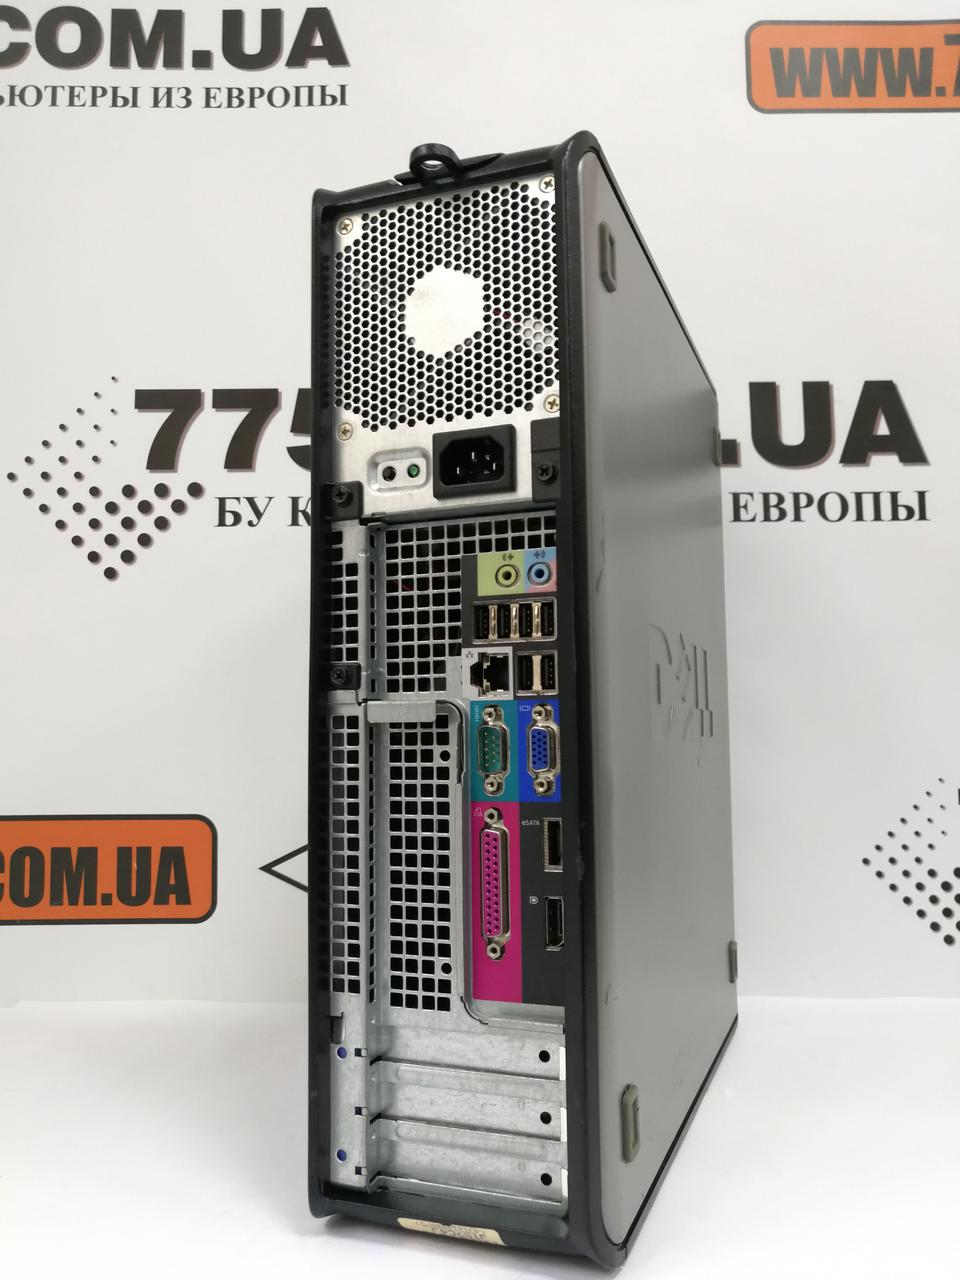 Компьютер Dell OptiPlex 760 (Desktop), Intel Core2Quad Q6600 2 4GHz, RAM  4ГБ, HDD 160ГБ